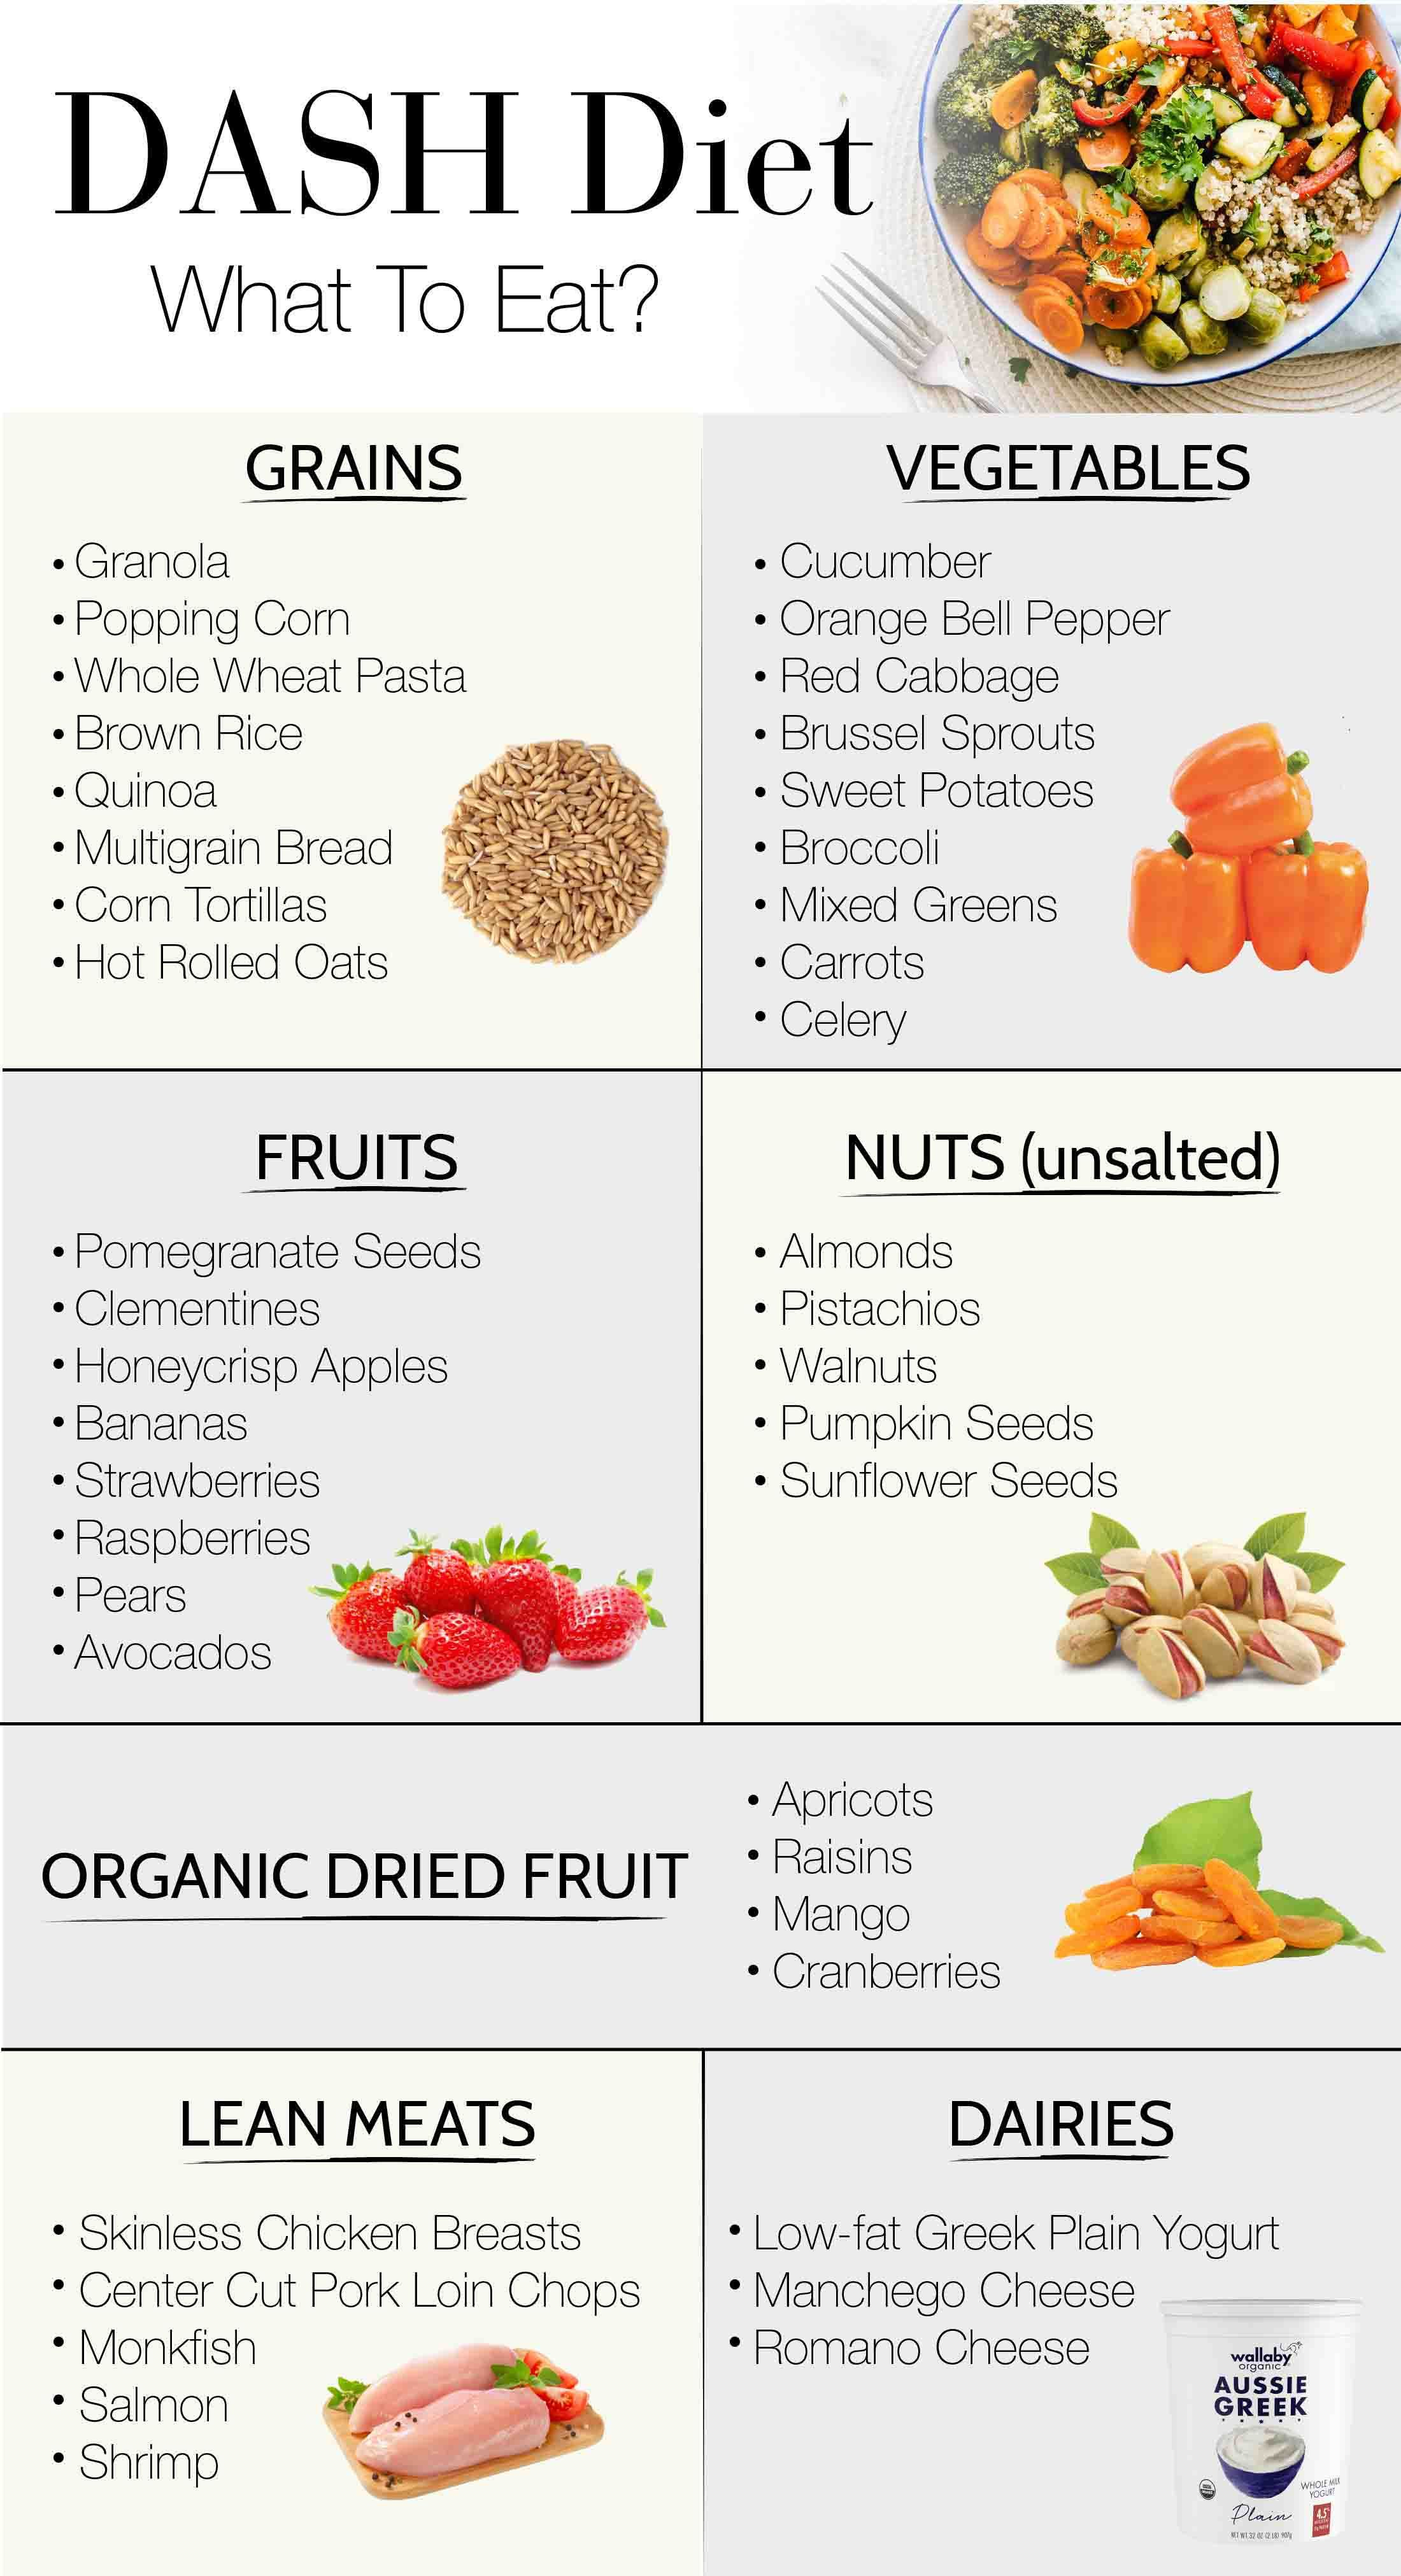 DASH DIET A LIFELONG HEALTHY EATING PLAN OUR FAMILYS WAY Our fam lives the DASH Diet  Mediterranean Diet too Weve got the shopping list meal plans  lowsodium snacks on lo...